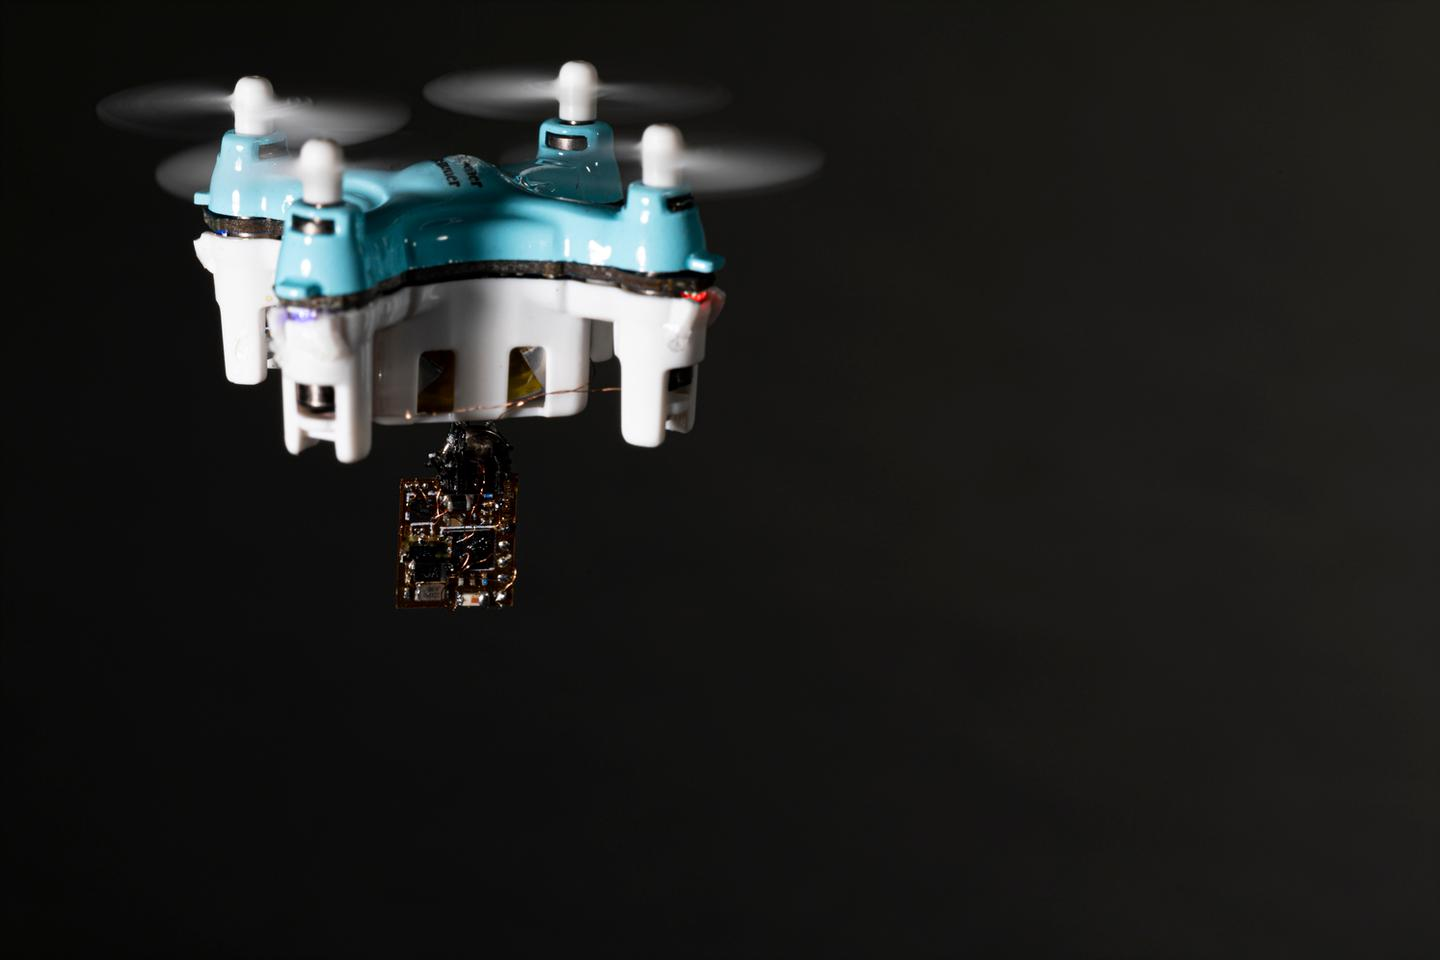 Small drones could be deployed to drop the sensors where needed, such as forests and farms